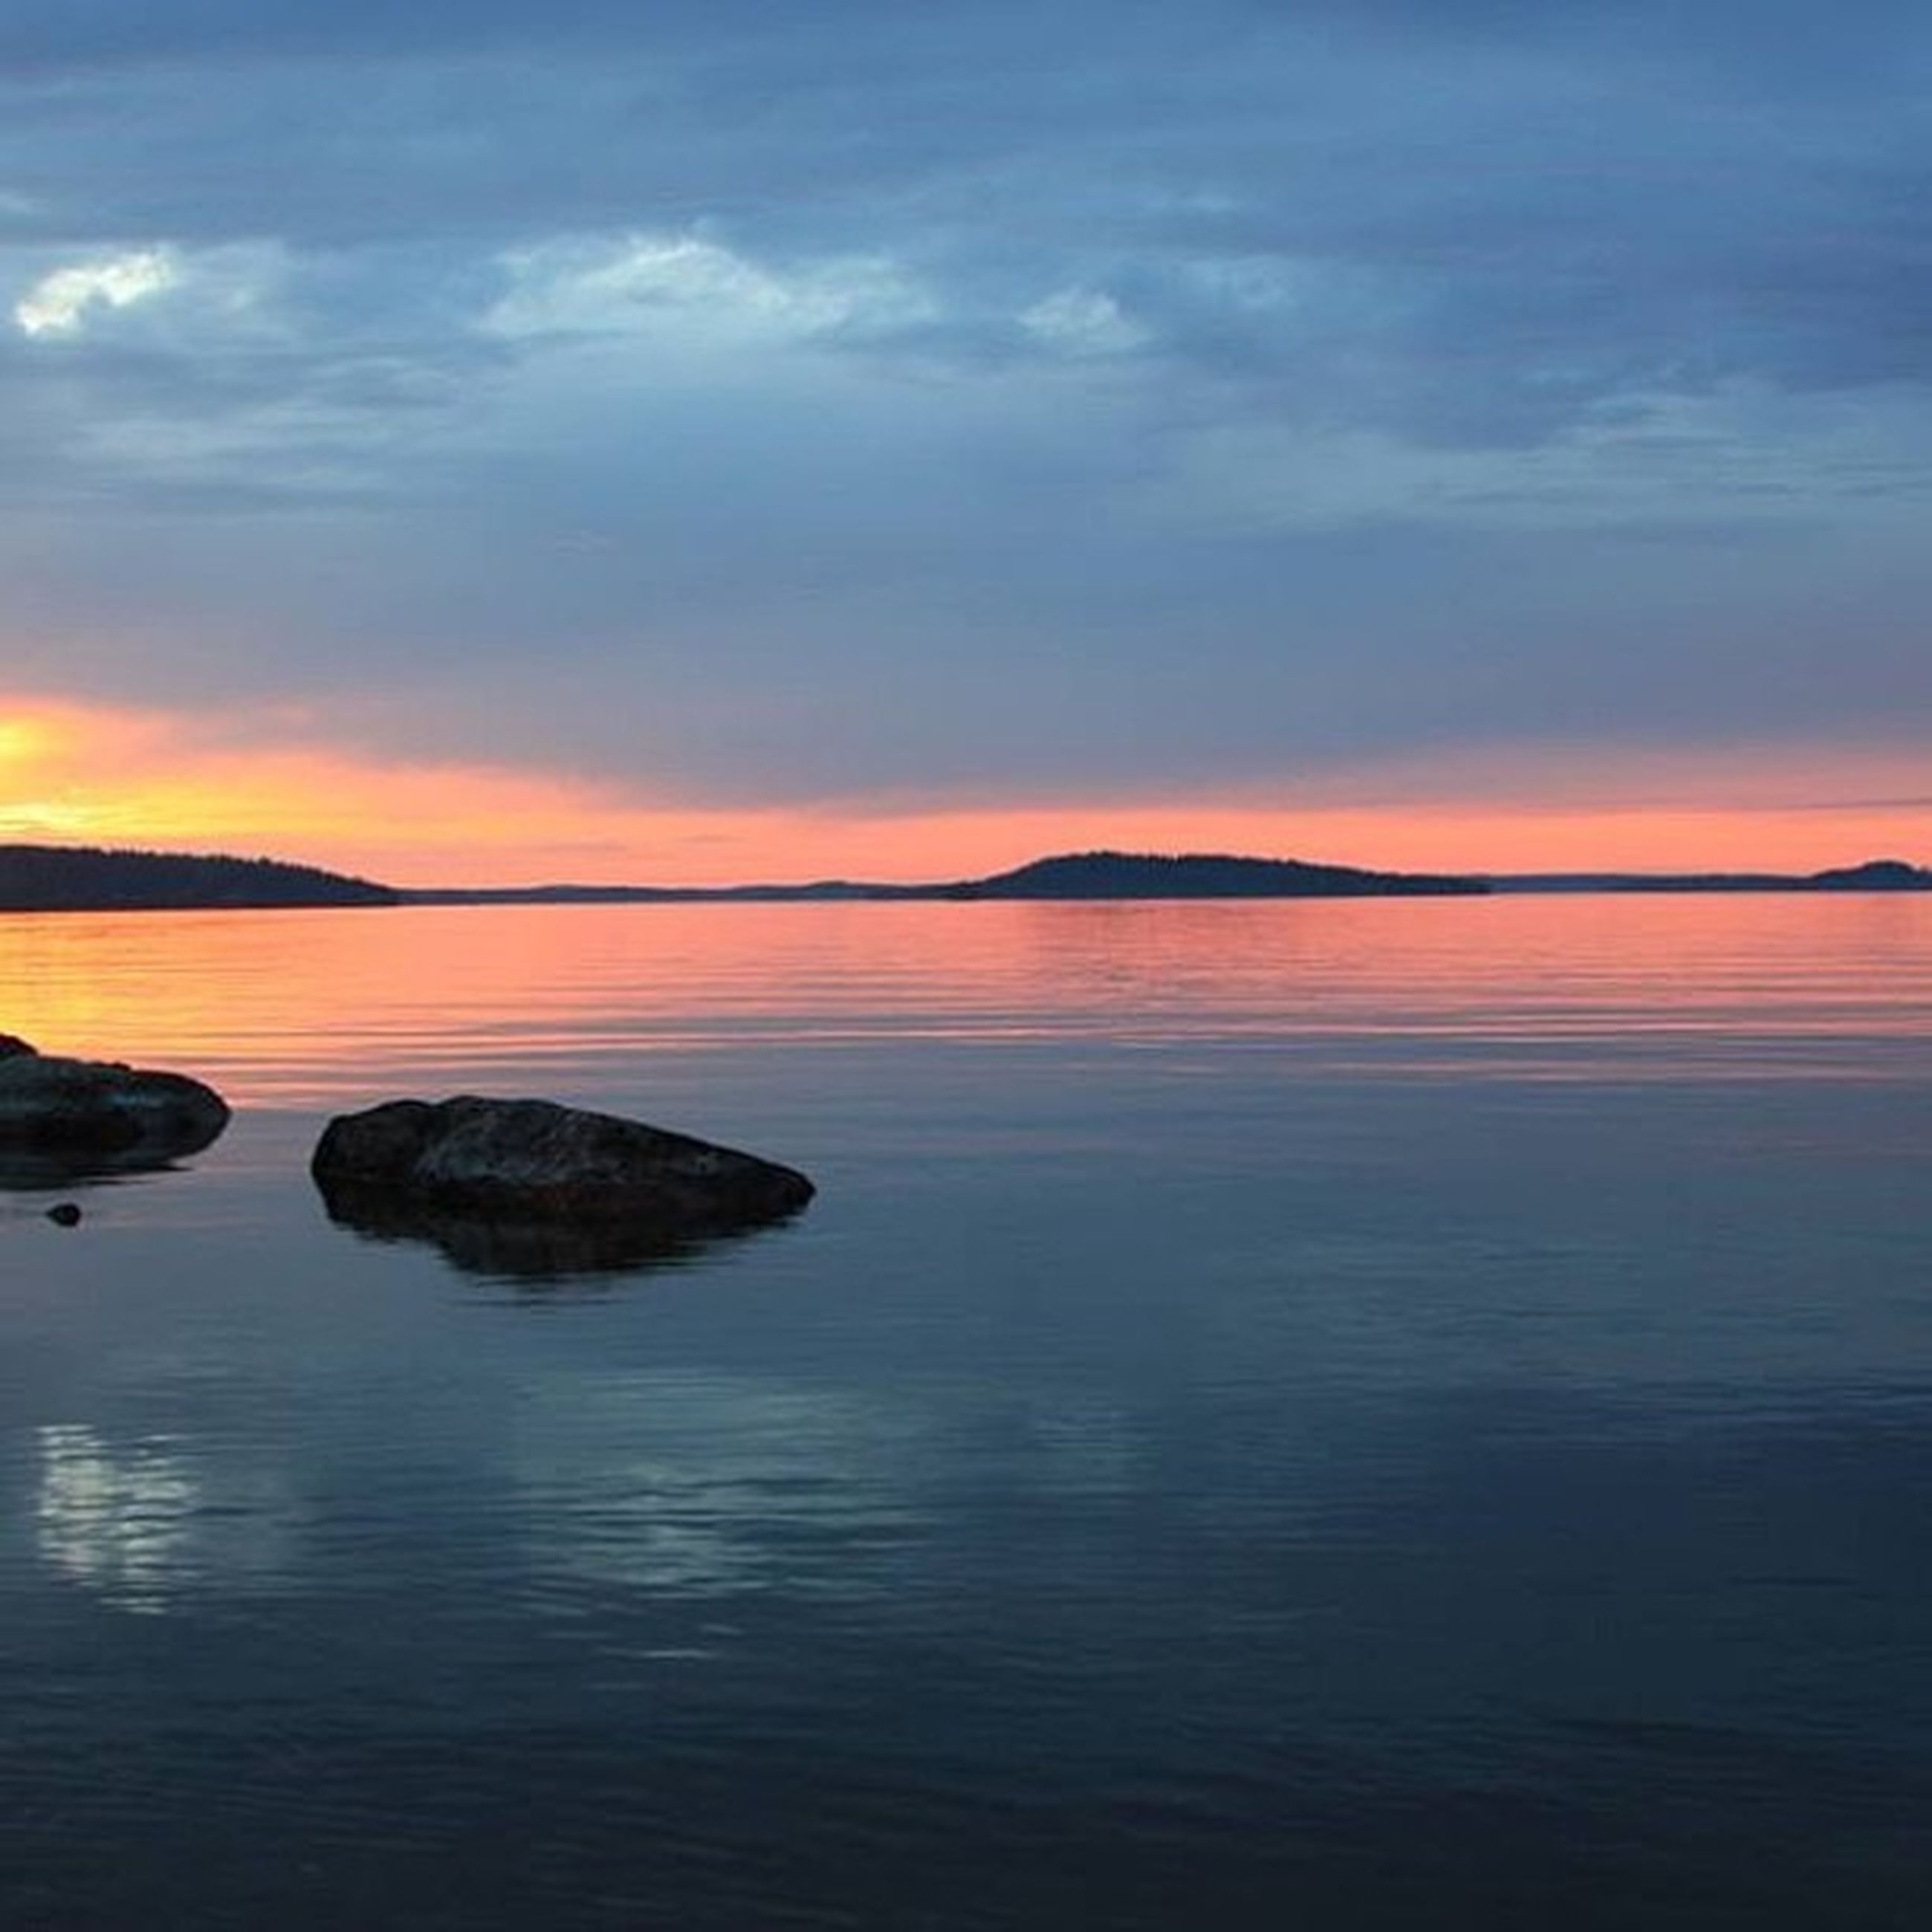 water, sunset, tranquil scene, scenics, tranquility, beauty in nature, sky, waterfront, reflection, orange color, idyllic, sea, nature, cloud - sky, lake, rock - object, rippled, dusk, cloud, non-urban scene